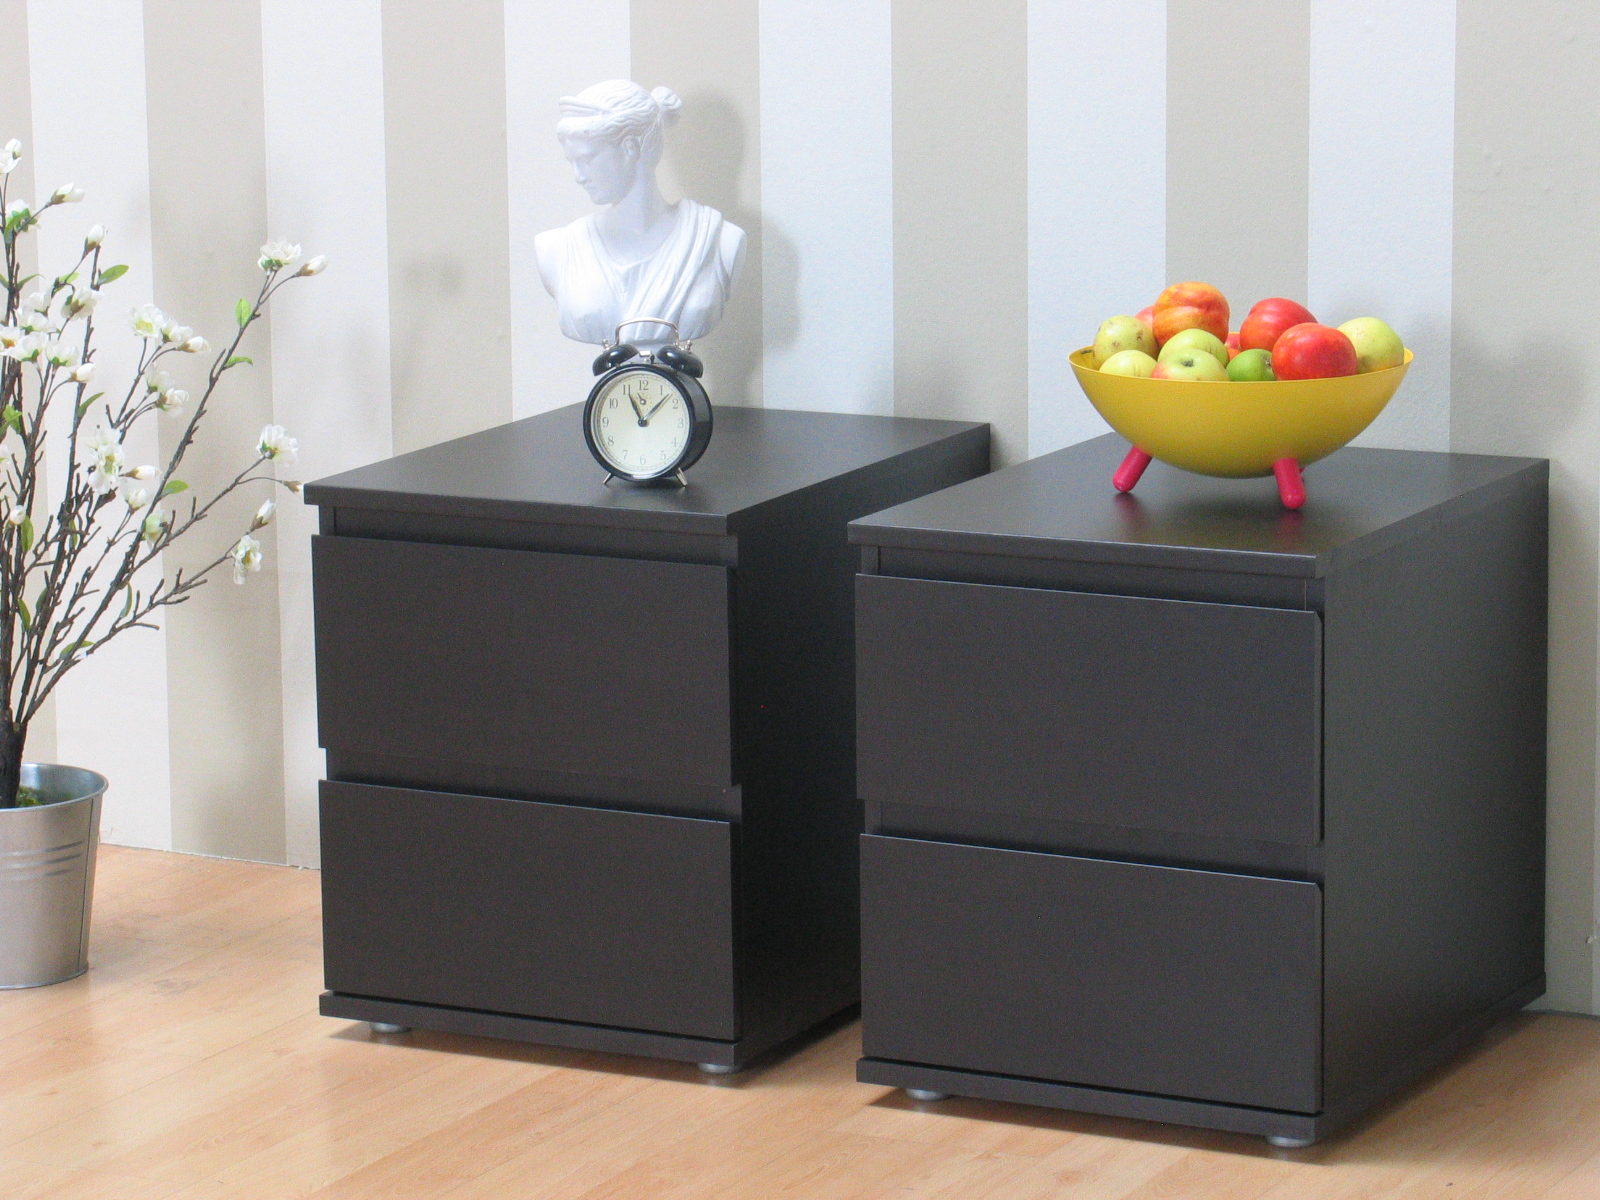 mia nachttische 2 stck kolonial bestellen sie hier. Black Bedroom Furniture Sets. Home Design Ideas